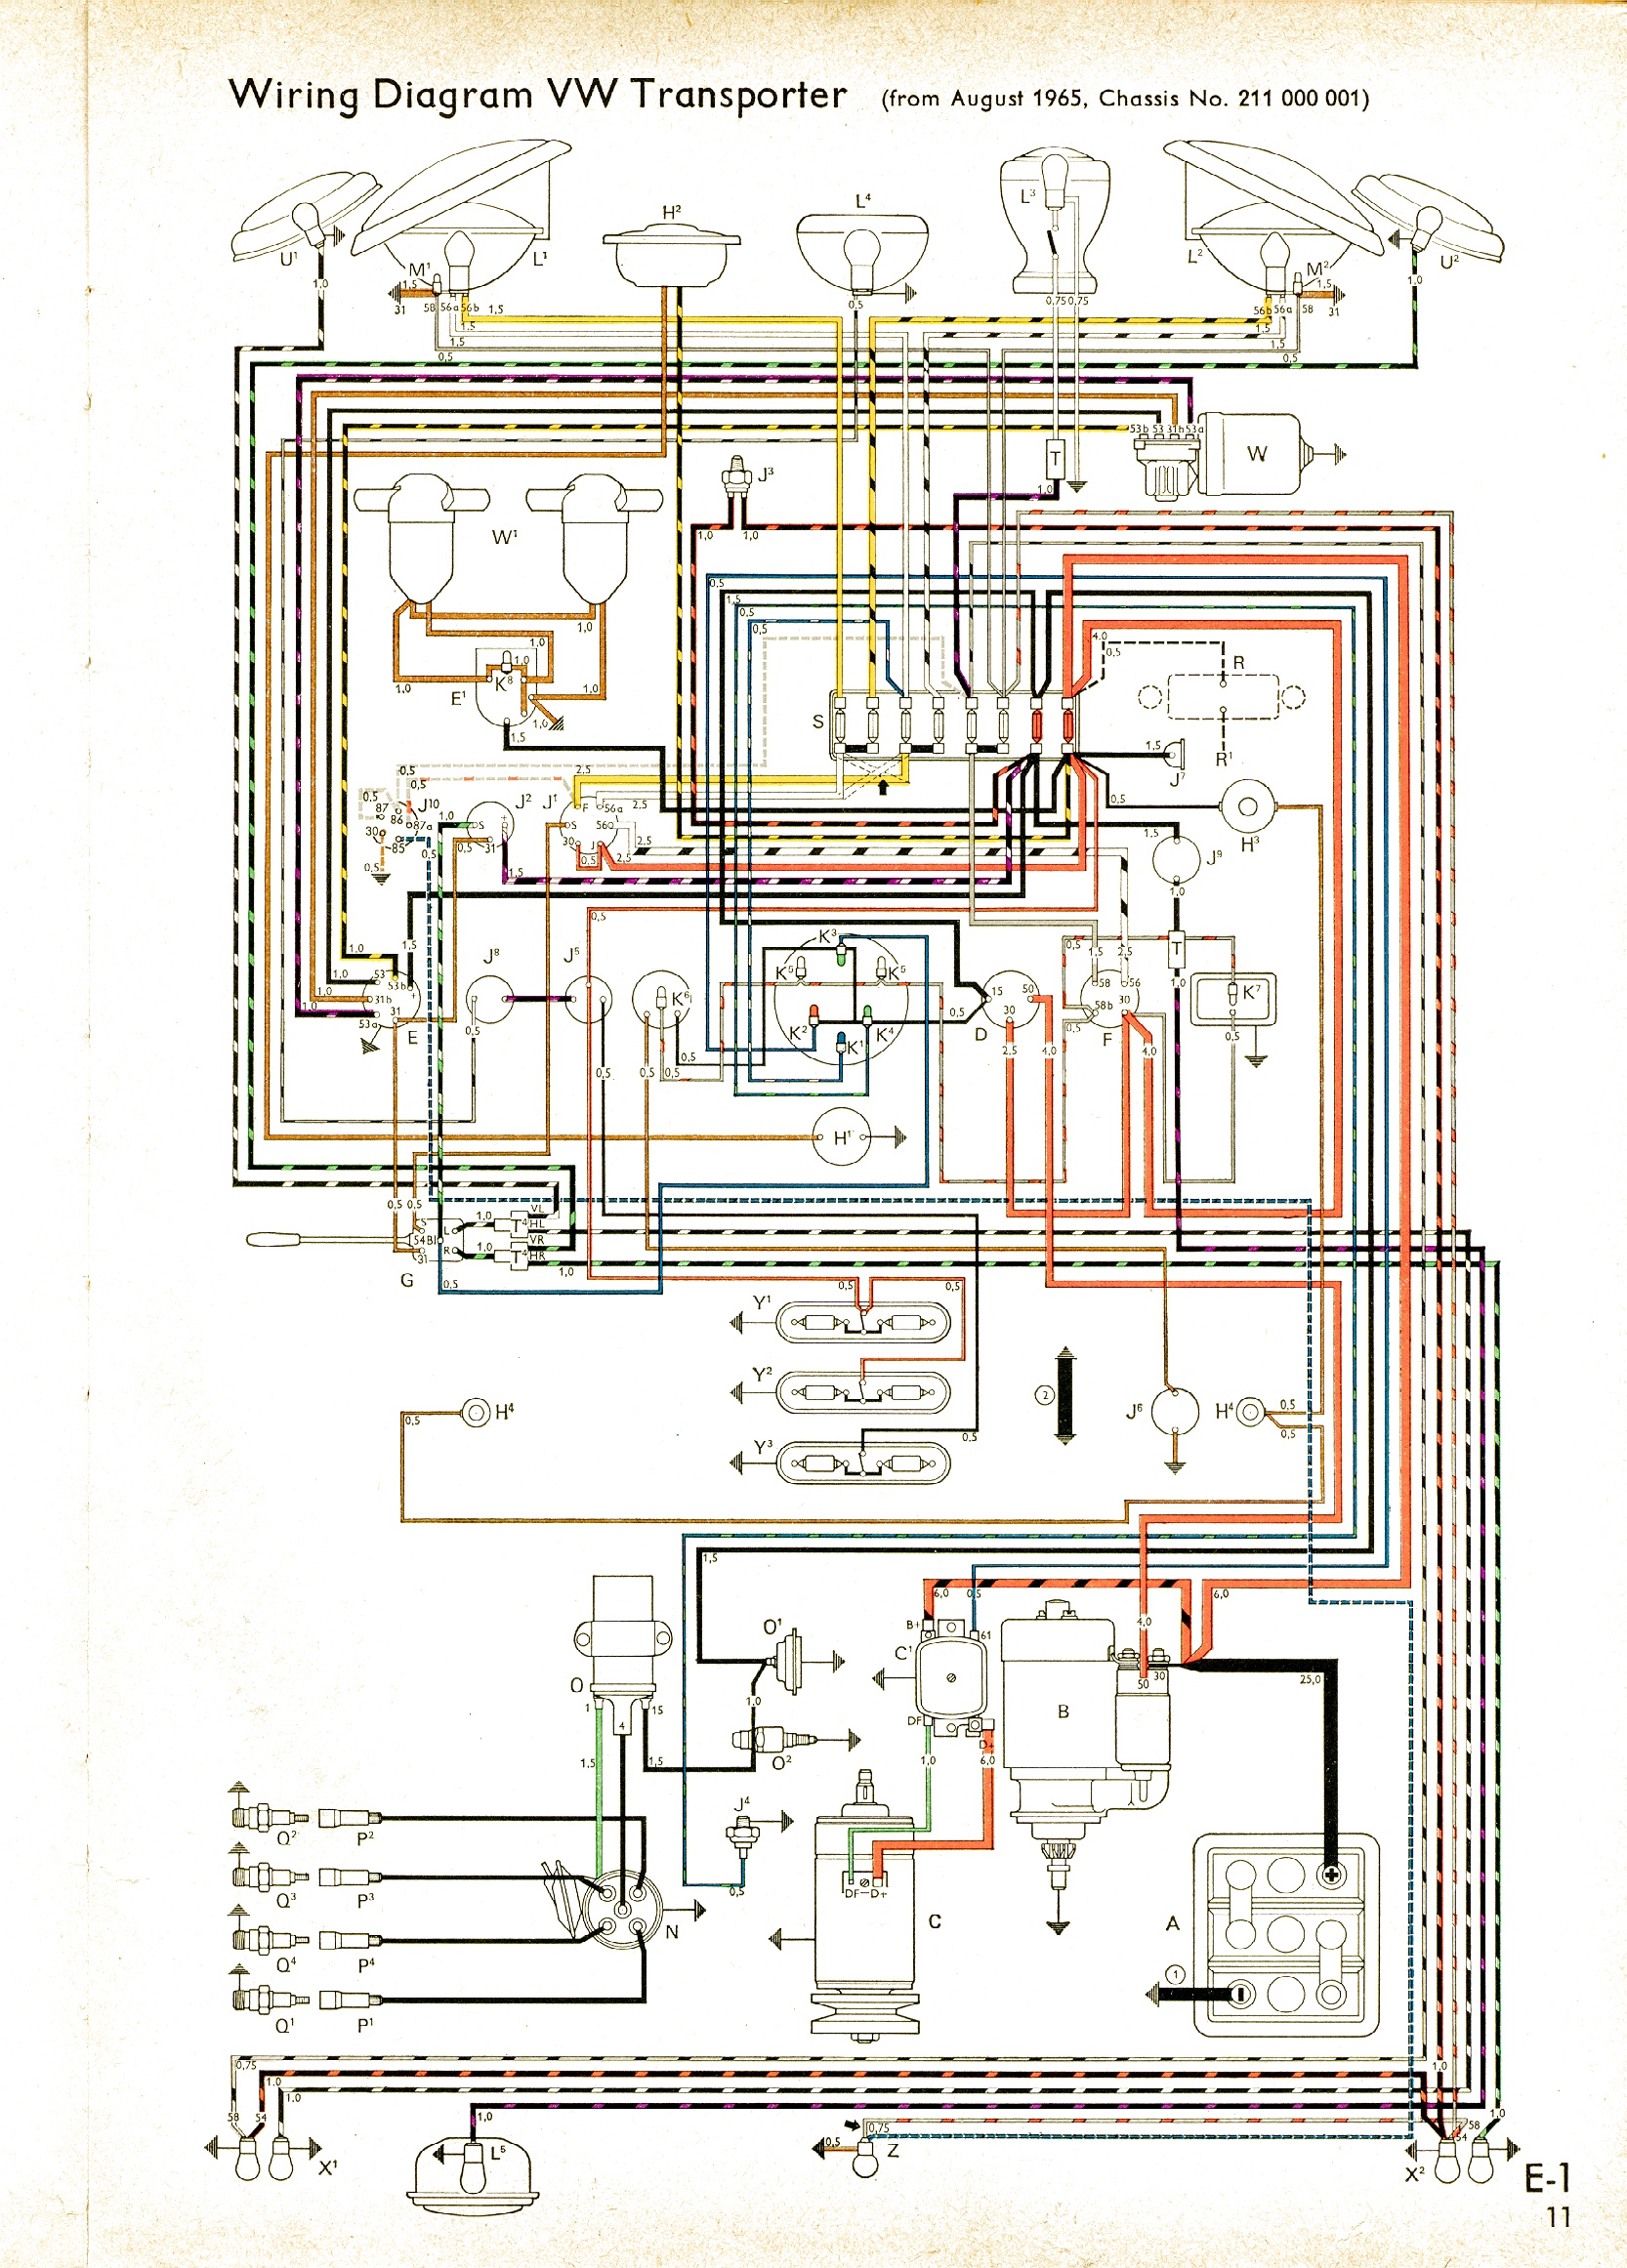 Vw Beetle Window Wiring Diagram | Wiring Liry on 1985 jeep cj7 wiring-diagram, 2004 chrysler sebring wiring-diagram, 1973 mgb wiring-diagram, 1977 jeep cj7 wiring-diagram, jeep to chevy wiring harness, sw gauges wiring-diagram, jeep patriot wiring-diagram, jeep liberty wiring-diagram, 1979 jeep cj7 wiring-diagram, jeep wagoneer wiring-diagram, 79 jeep cj7 wiring-diagram, jeep cj7 belt diagram, jeep jk wiring-diagram, jeep cherokee vacuum line diagrams, jeep xj wiring-diagram, pontiac bonneville wiring-diagram, isuzu trooper wiring-diagram, jeep cherokee tail light wiring diagram, jeep cj3b wiring-diagram, jeep tj wiring-diagram,